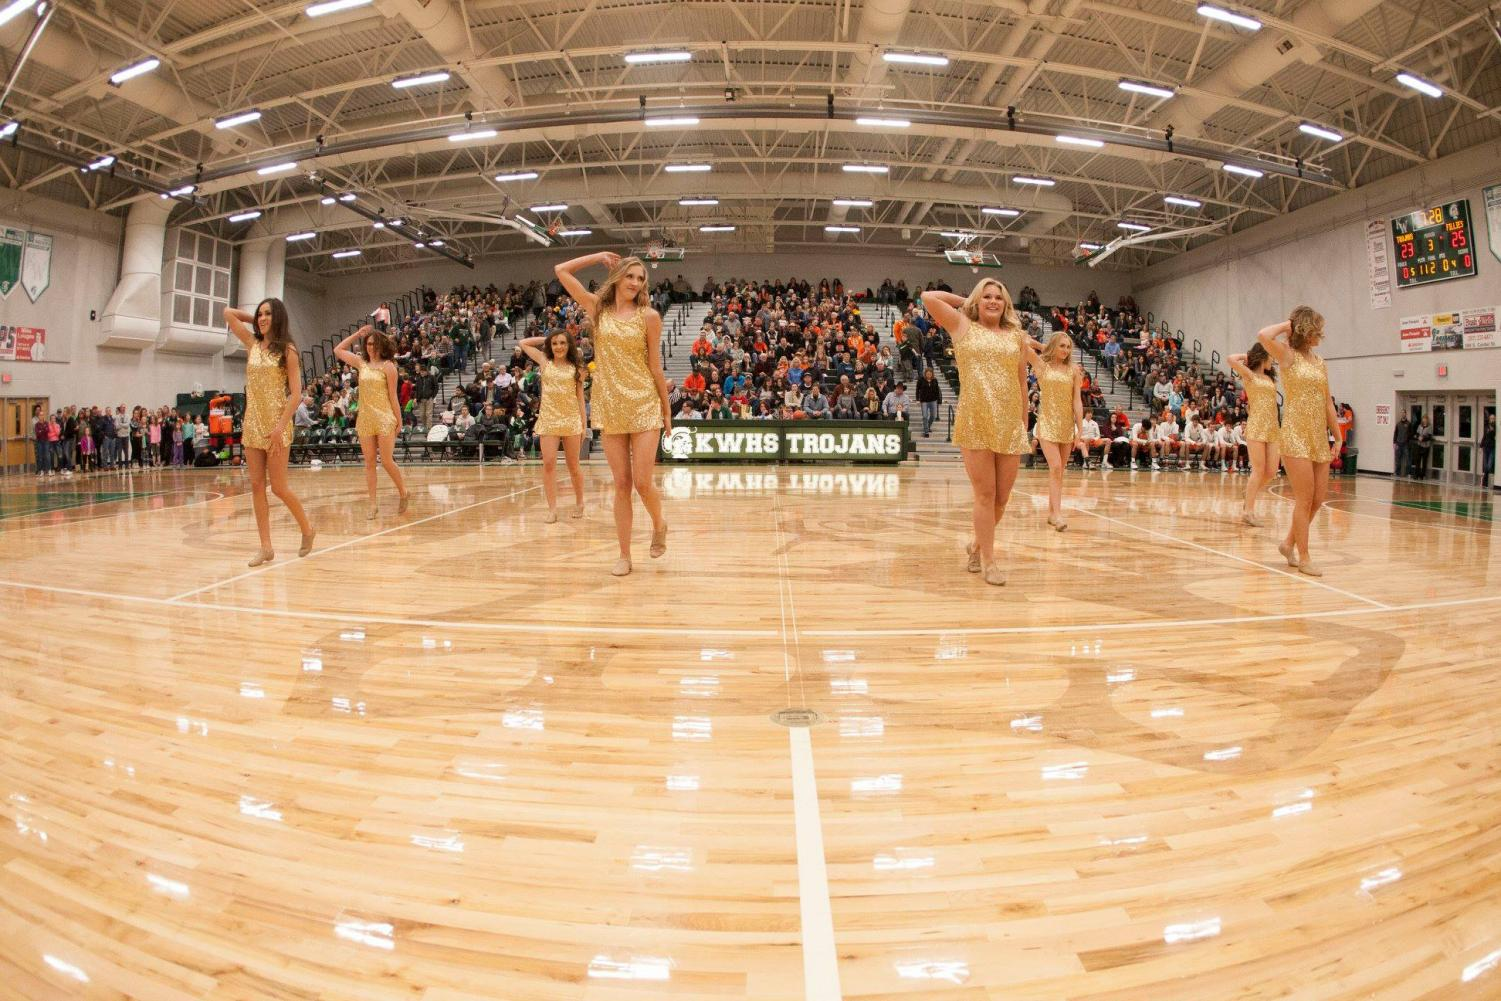 The KW Dance Team performs during halftime of the boys Peach Basket.  The team took 1th place at Nationals in both Small Hip Hop and Small Pom.